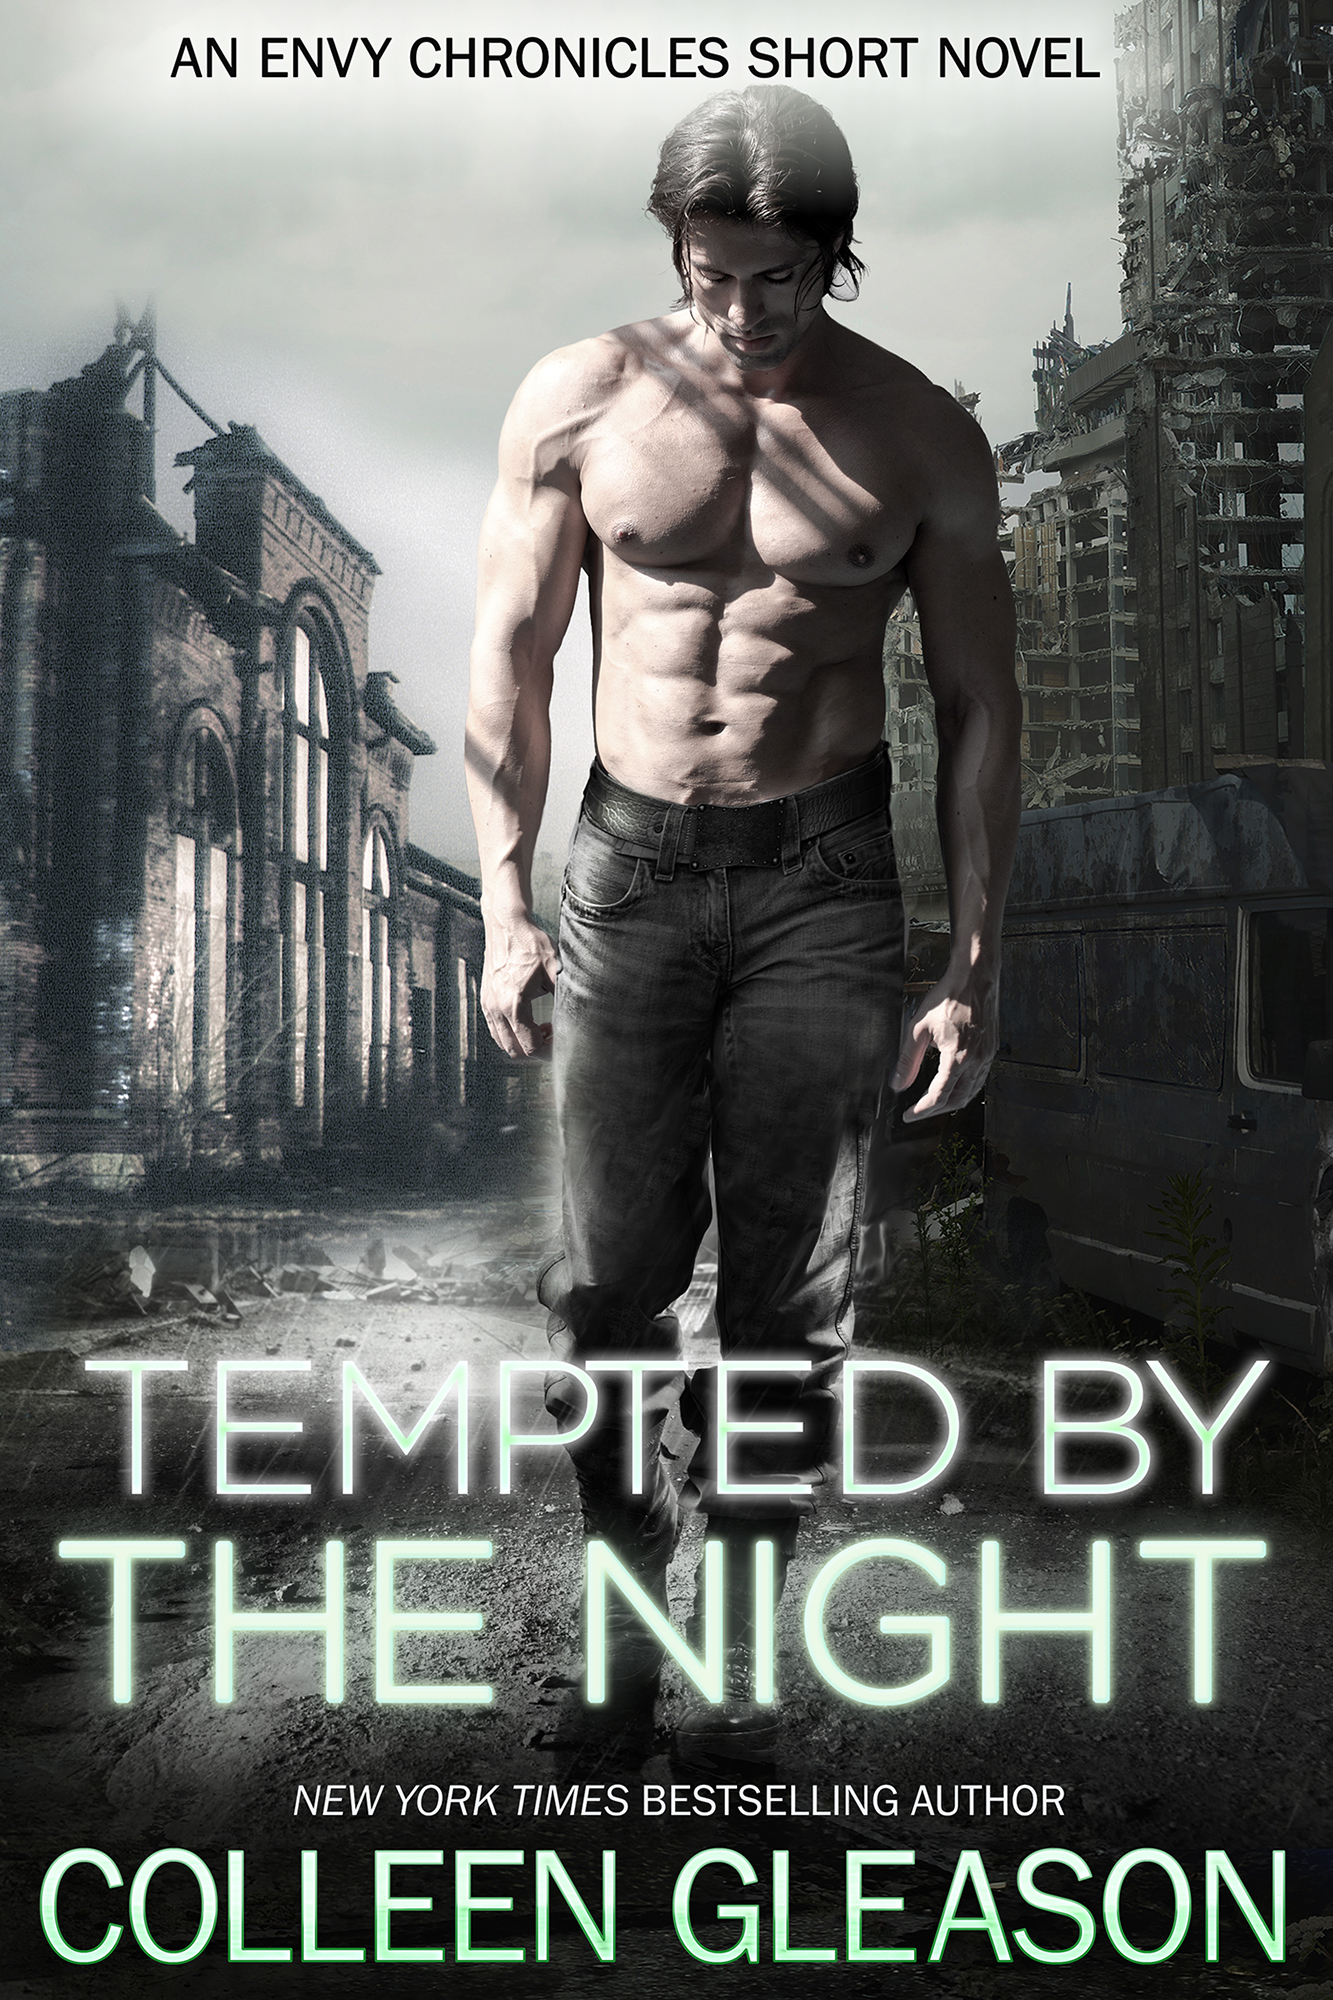 Tempted by the night